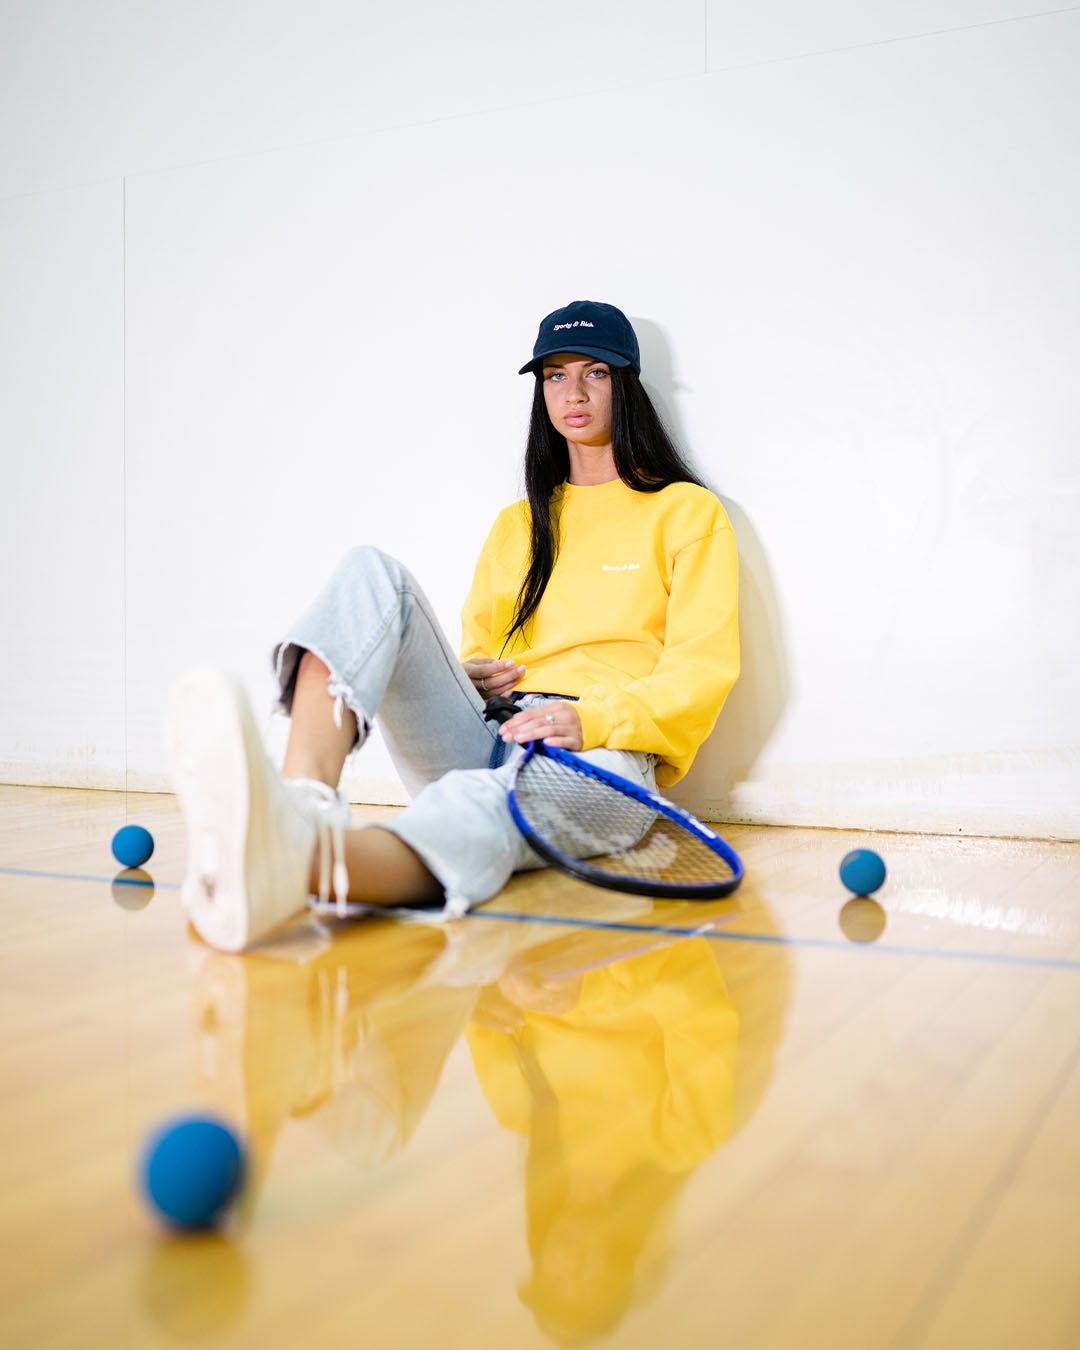 Sporty and Rich by Emily Oberg - Xhibition